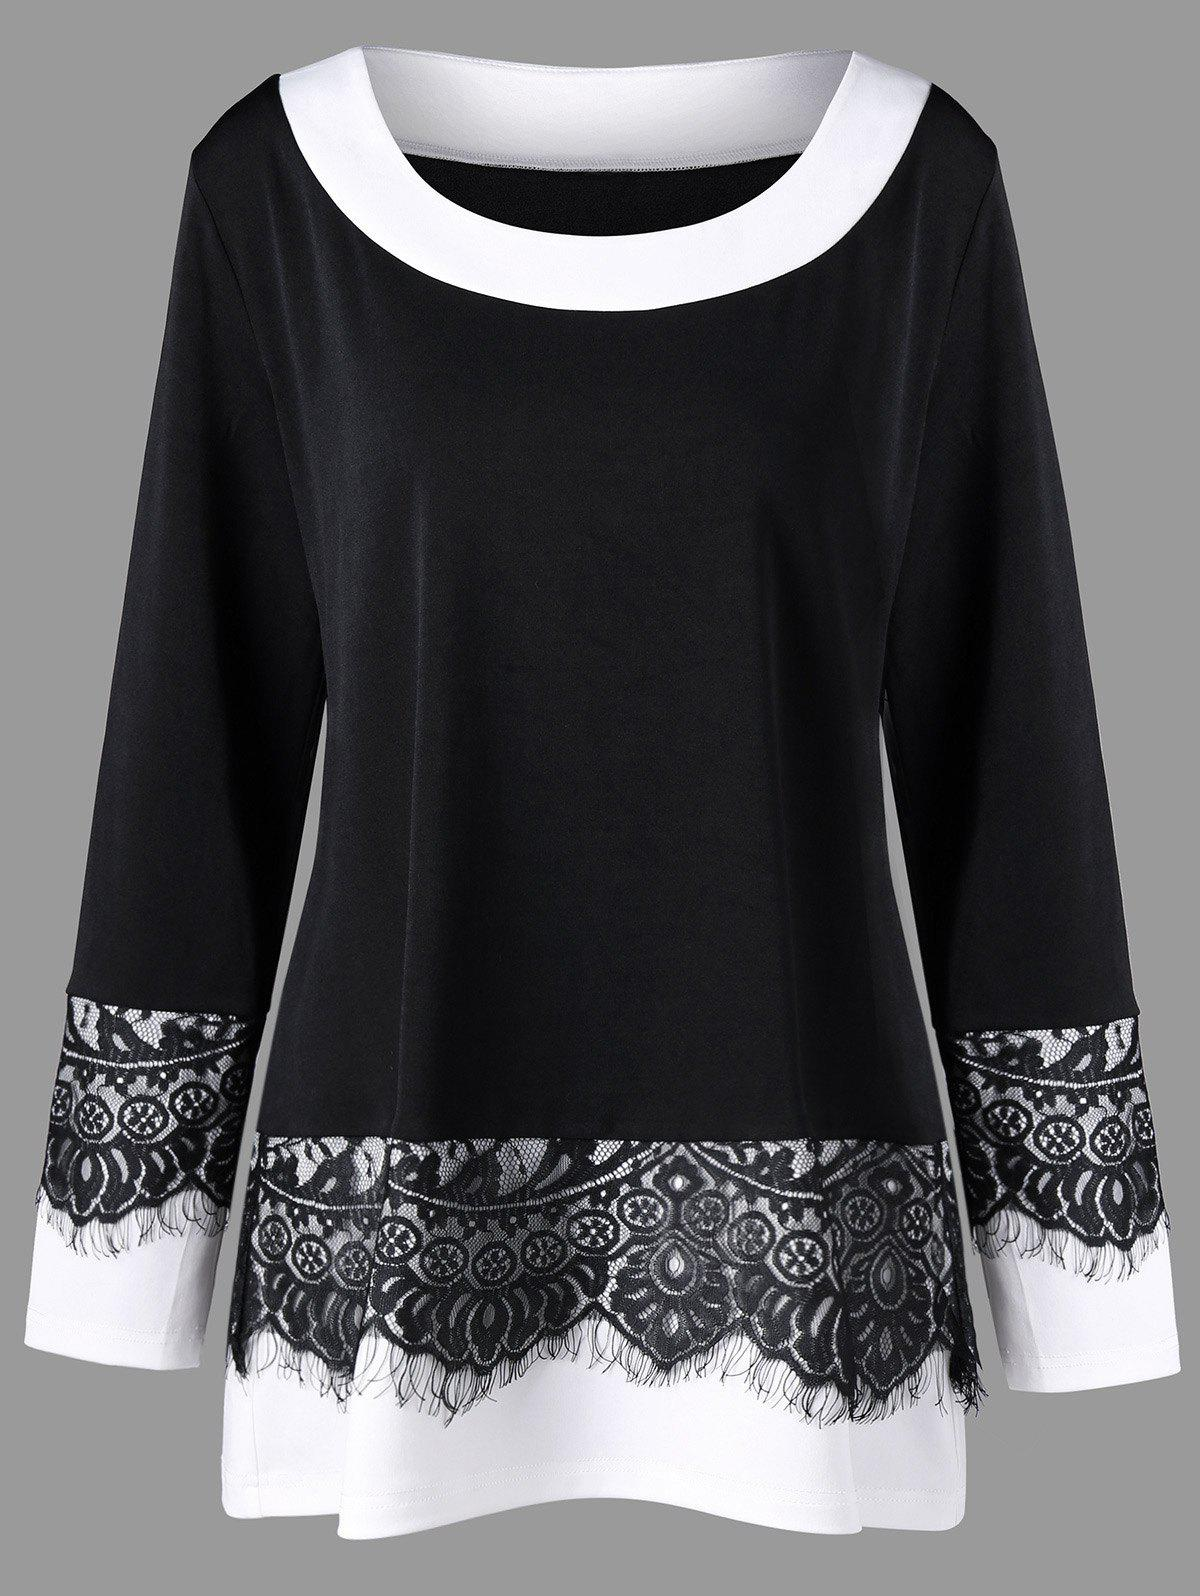 Plus Size Eyelash Lace Trim Two Tone Top contrast embroidered two tone plush top